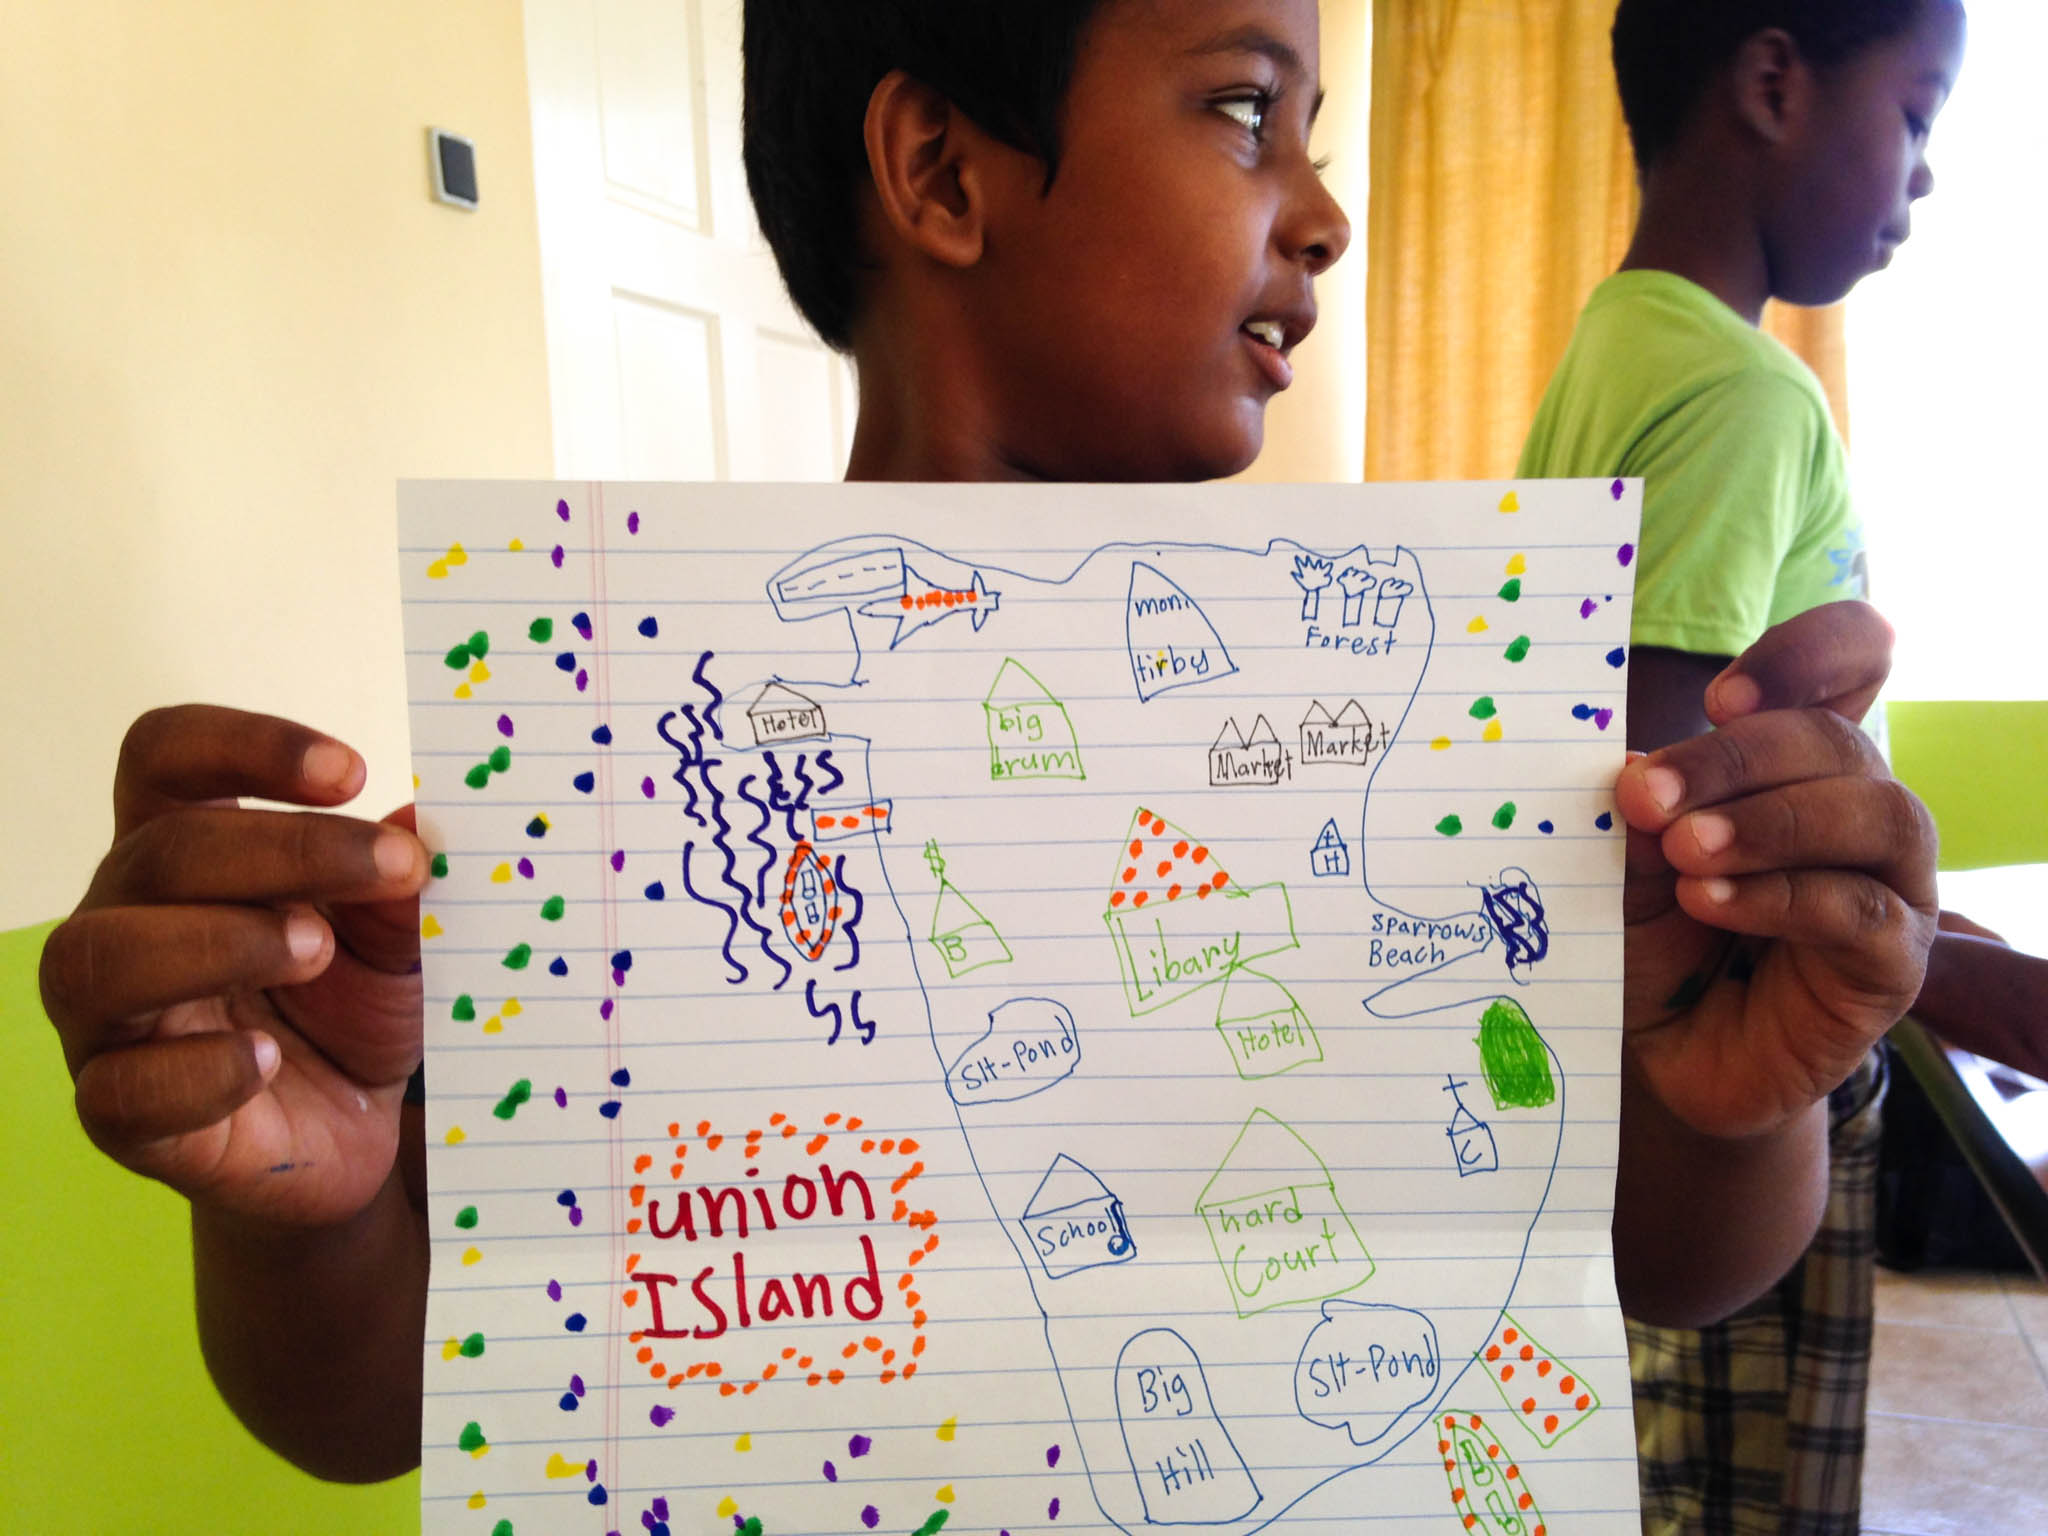 Stanislaus Gomes completing a community mapping exercise, Union Island low-cost film workshop - Photo, Tom Miller